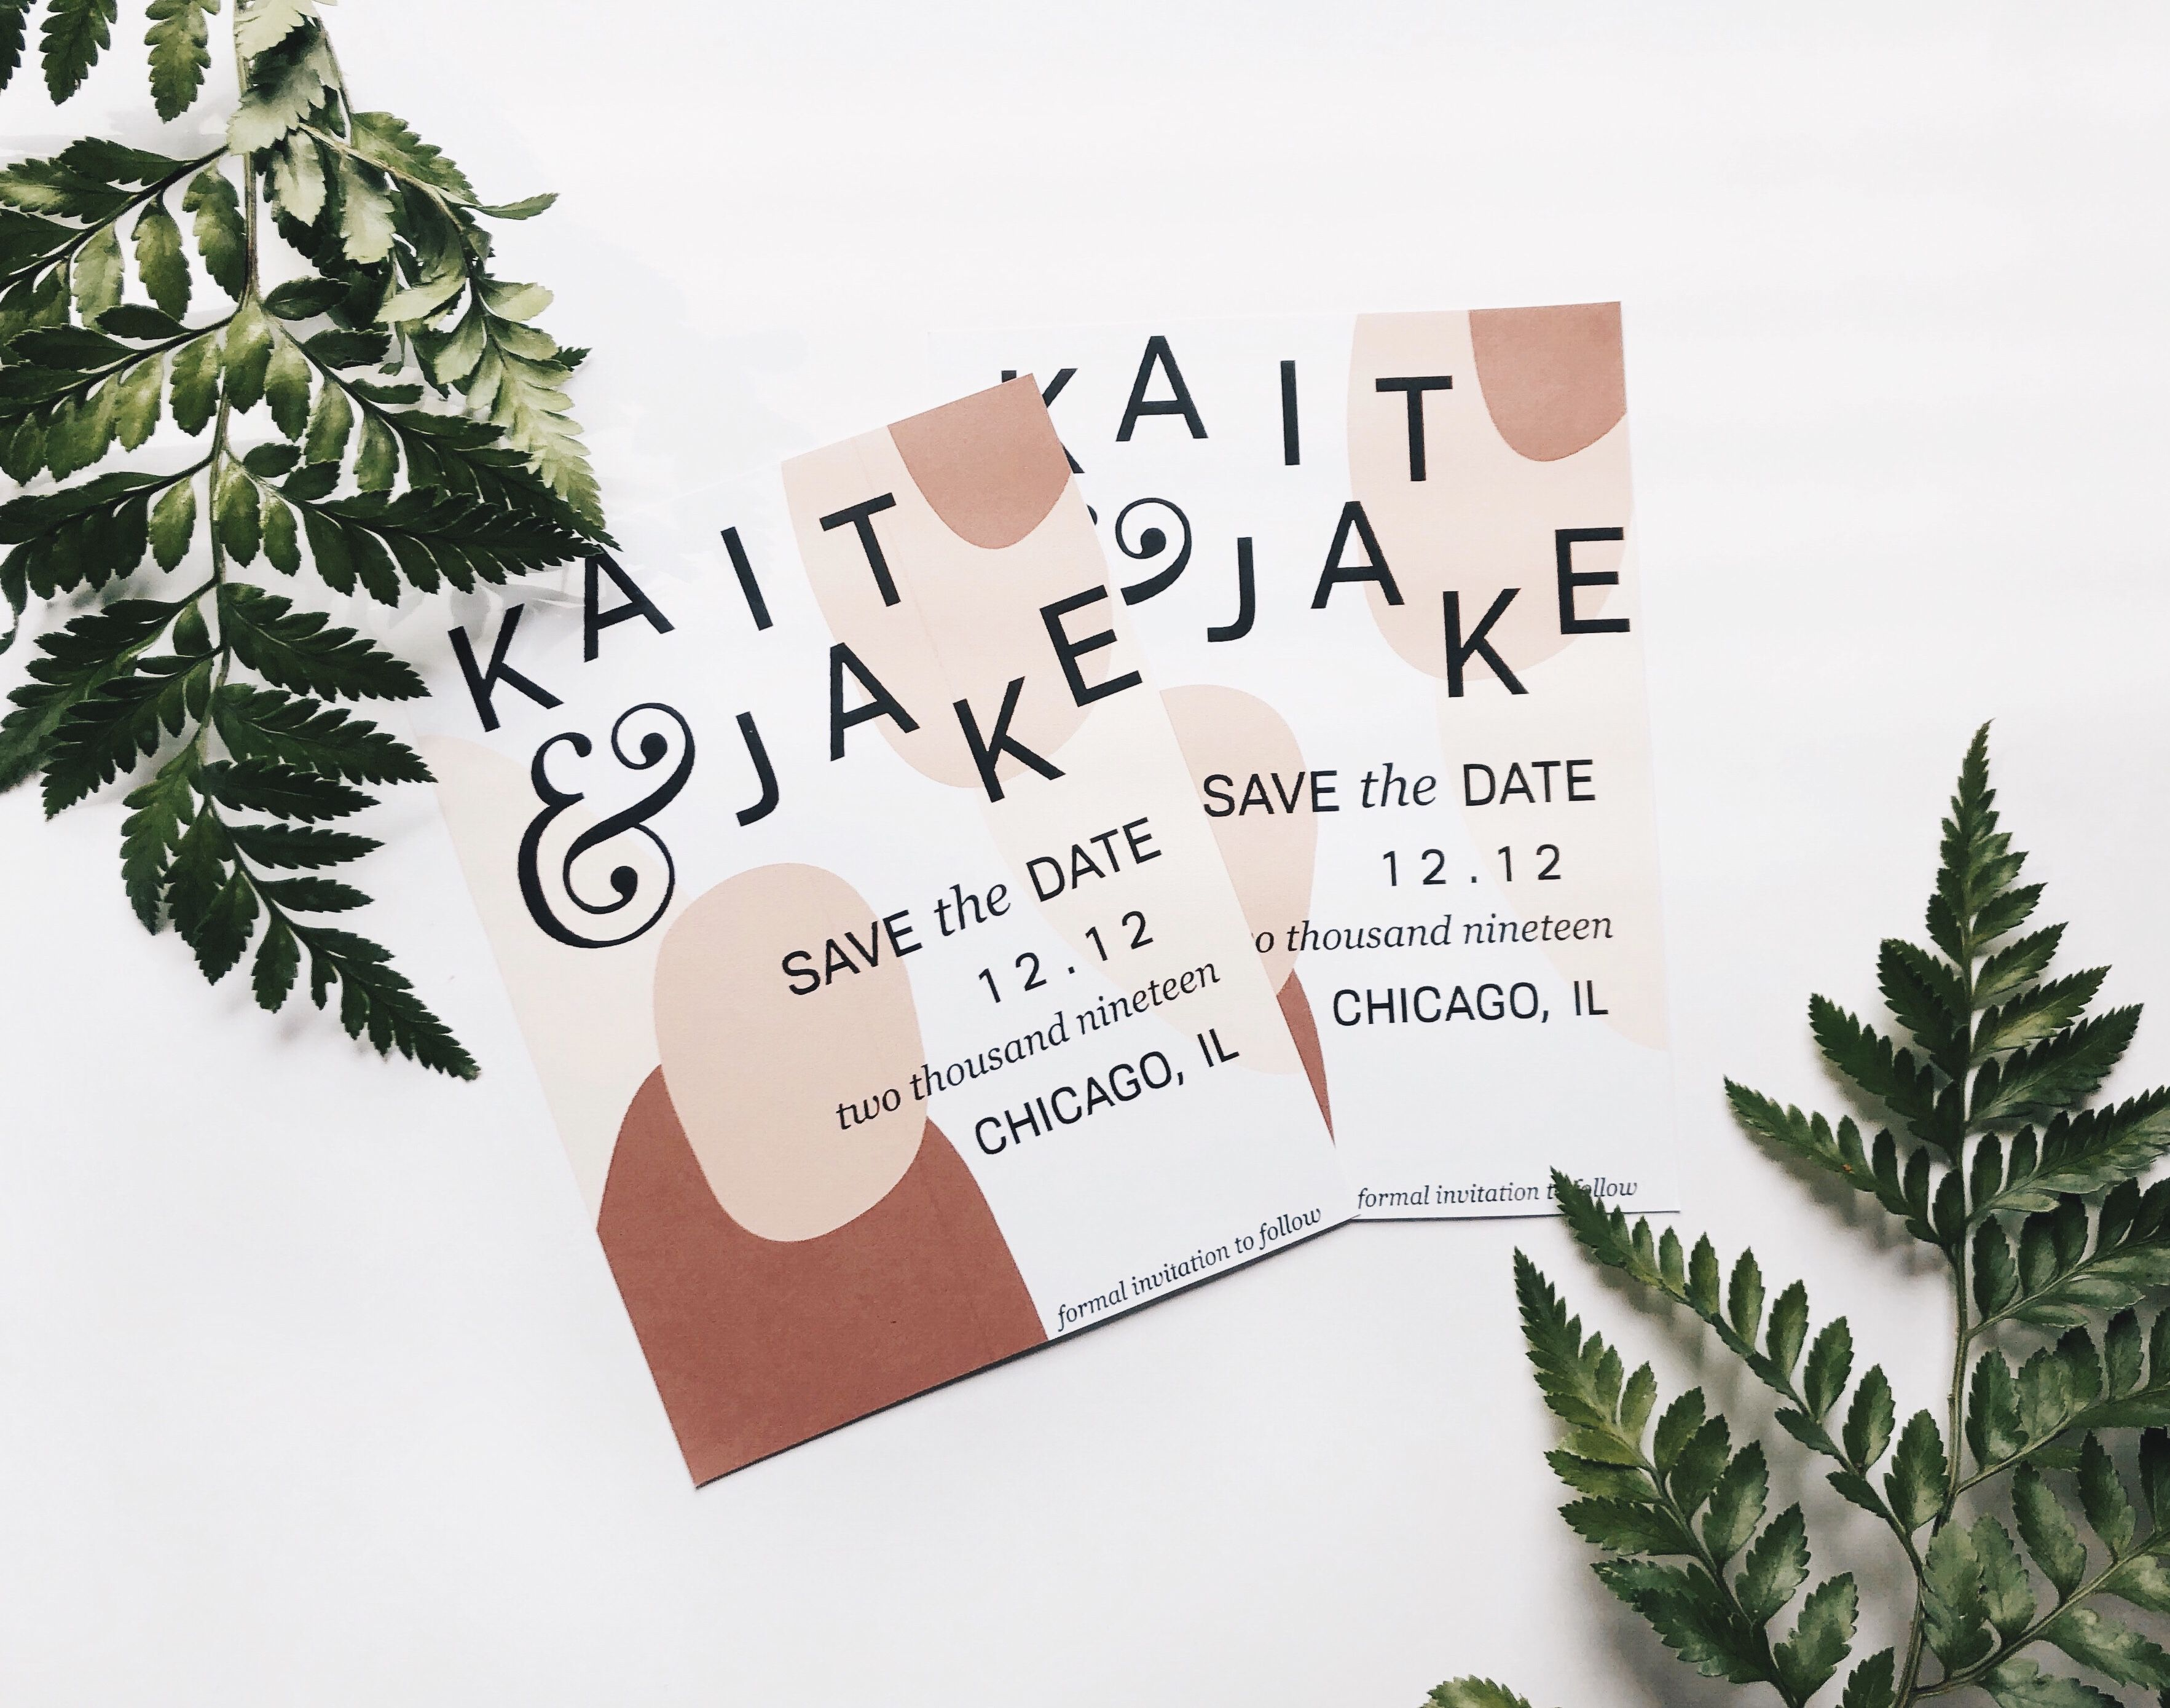 Save the dates design by Kaitlyn from FEM+FLEUR.